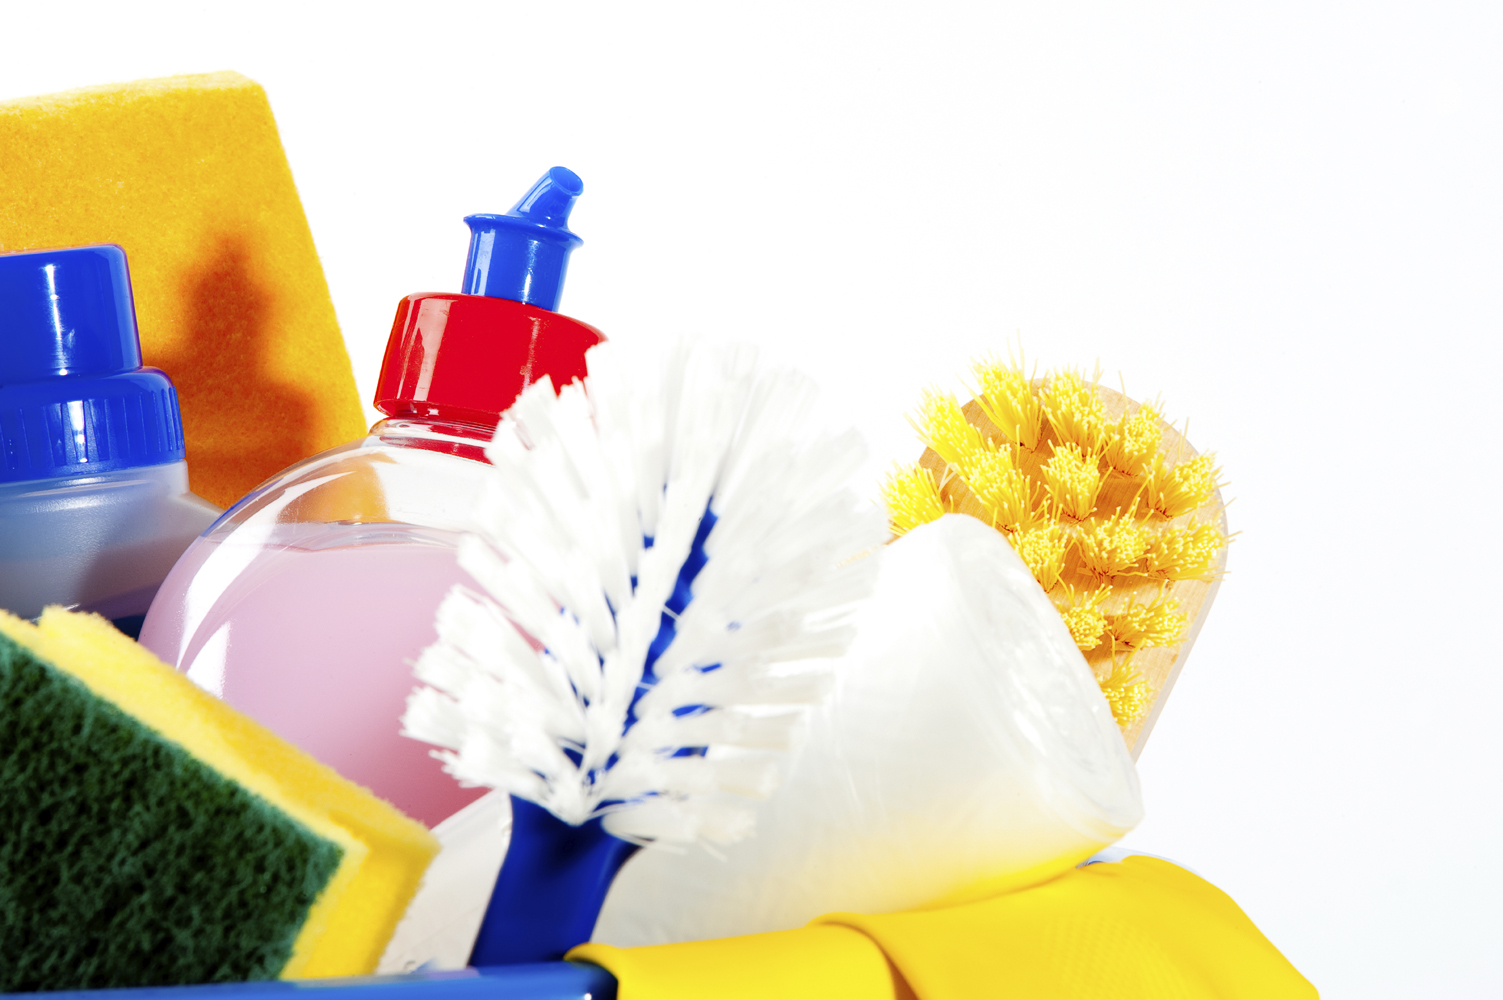 Storing Cleaners Safely